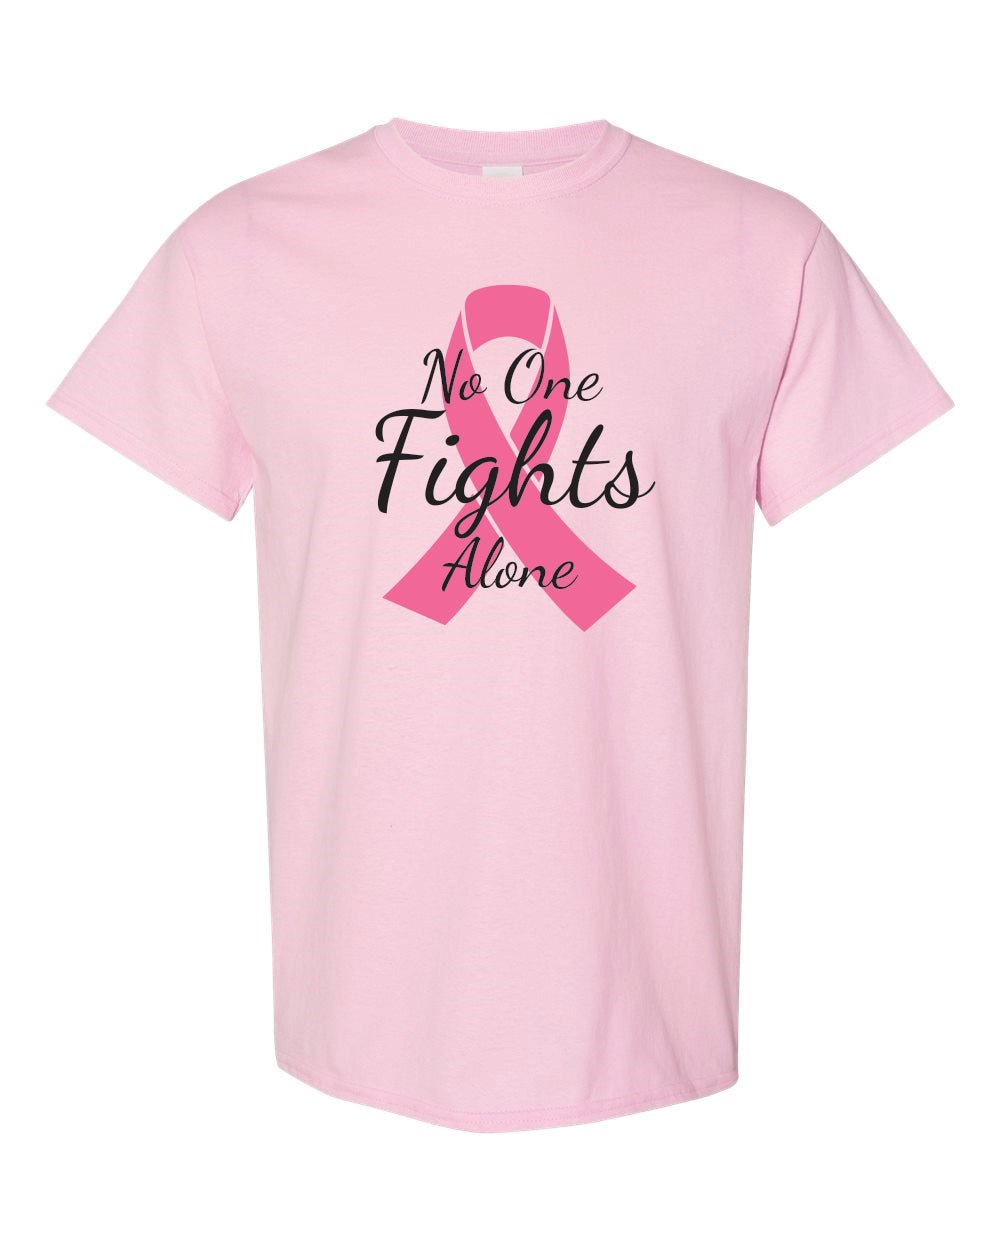 Breast Cancer Awareness Tshirt - Pink